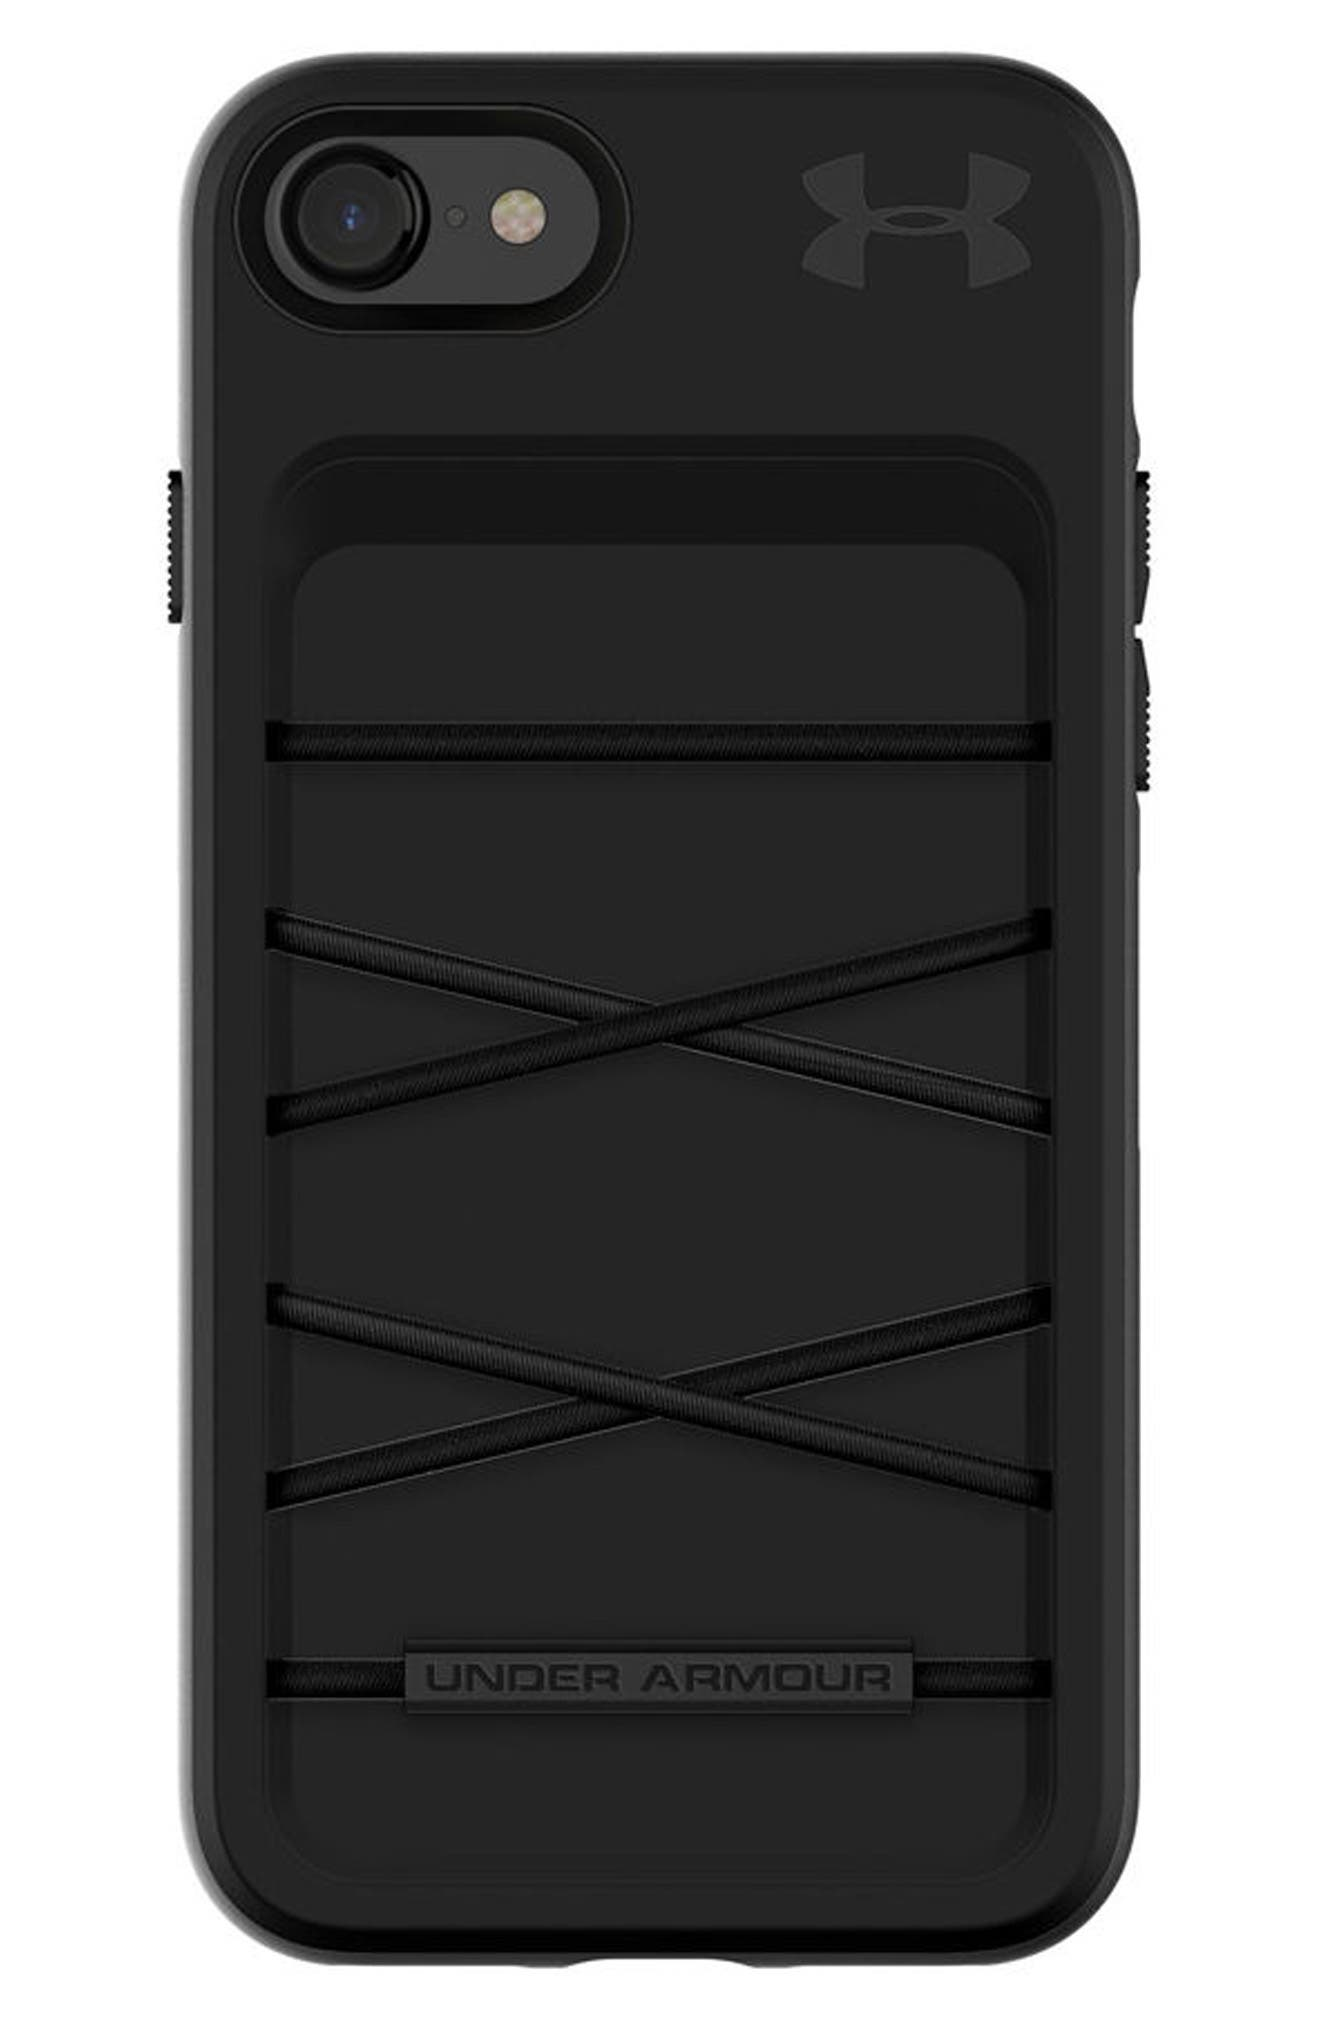 Protect Arsenal iPhone 7/8 Case,                             Main thumbnail 1, color,                             Black/ Black